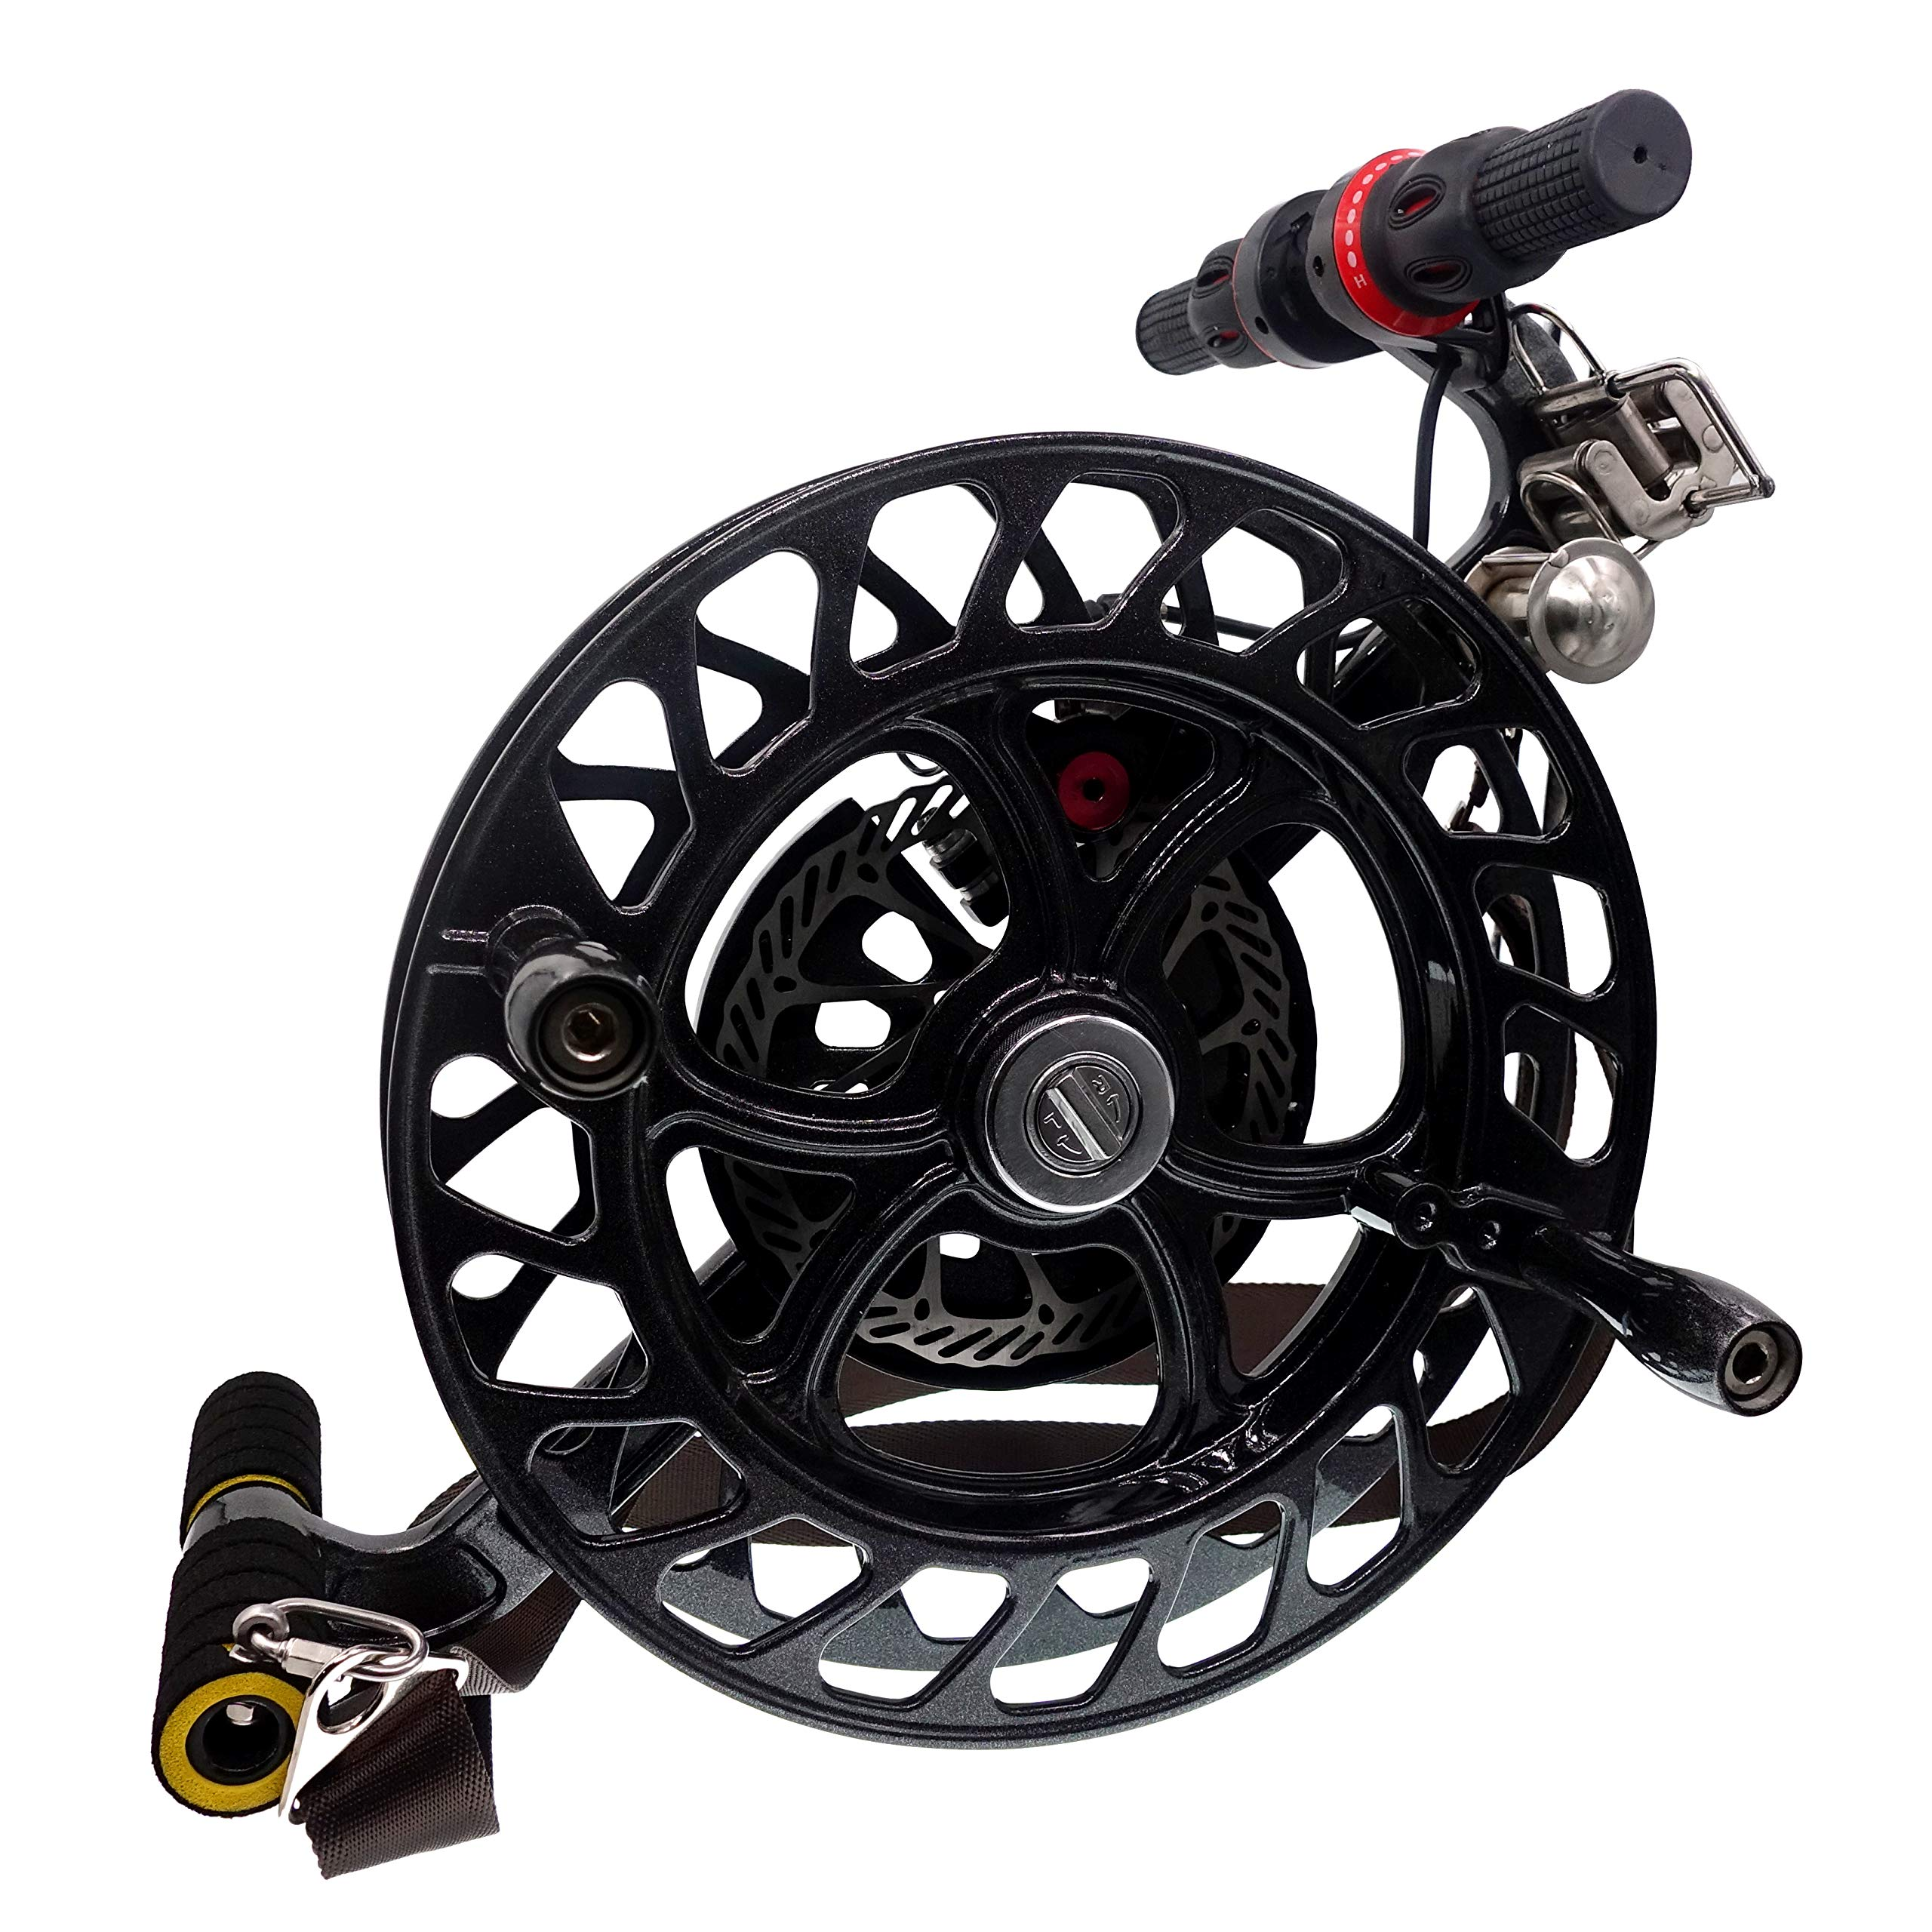 emma kites 12.6'' Black Kite Winder Reel with Disc Brake Shoulder Strap 7 Rollers for Kite Line in and Out by emma kites (Image #2)